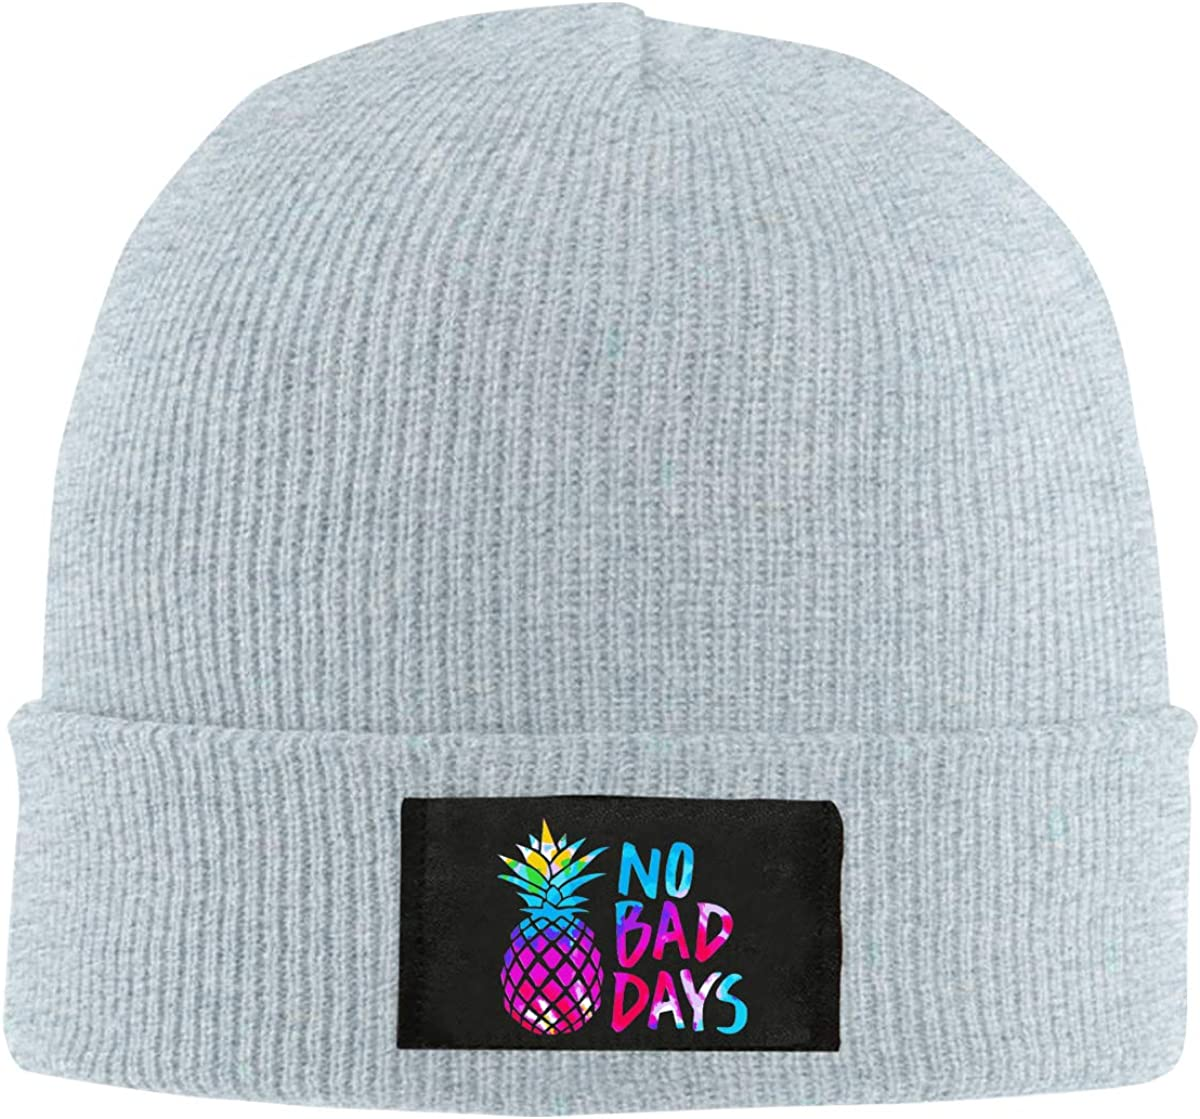 Unisex No Bad Days Tie Dye Pineapple Knitted Hat 100/% Acrylic Trendy Beanies Cap